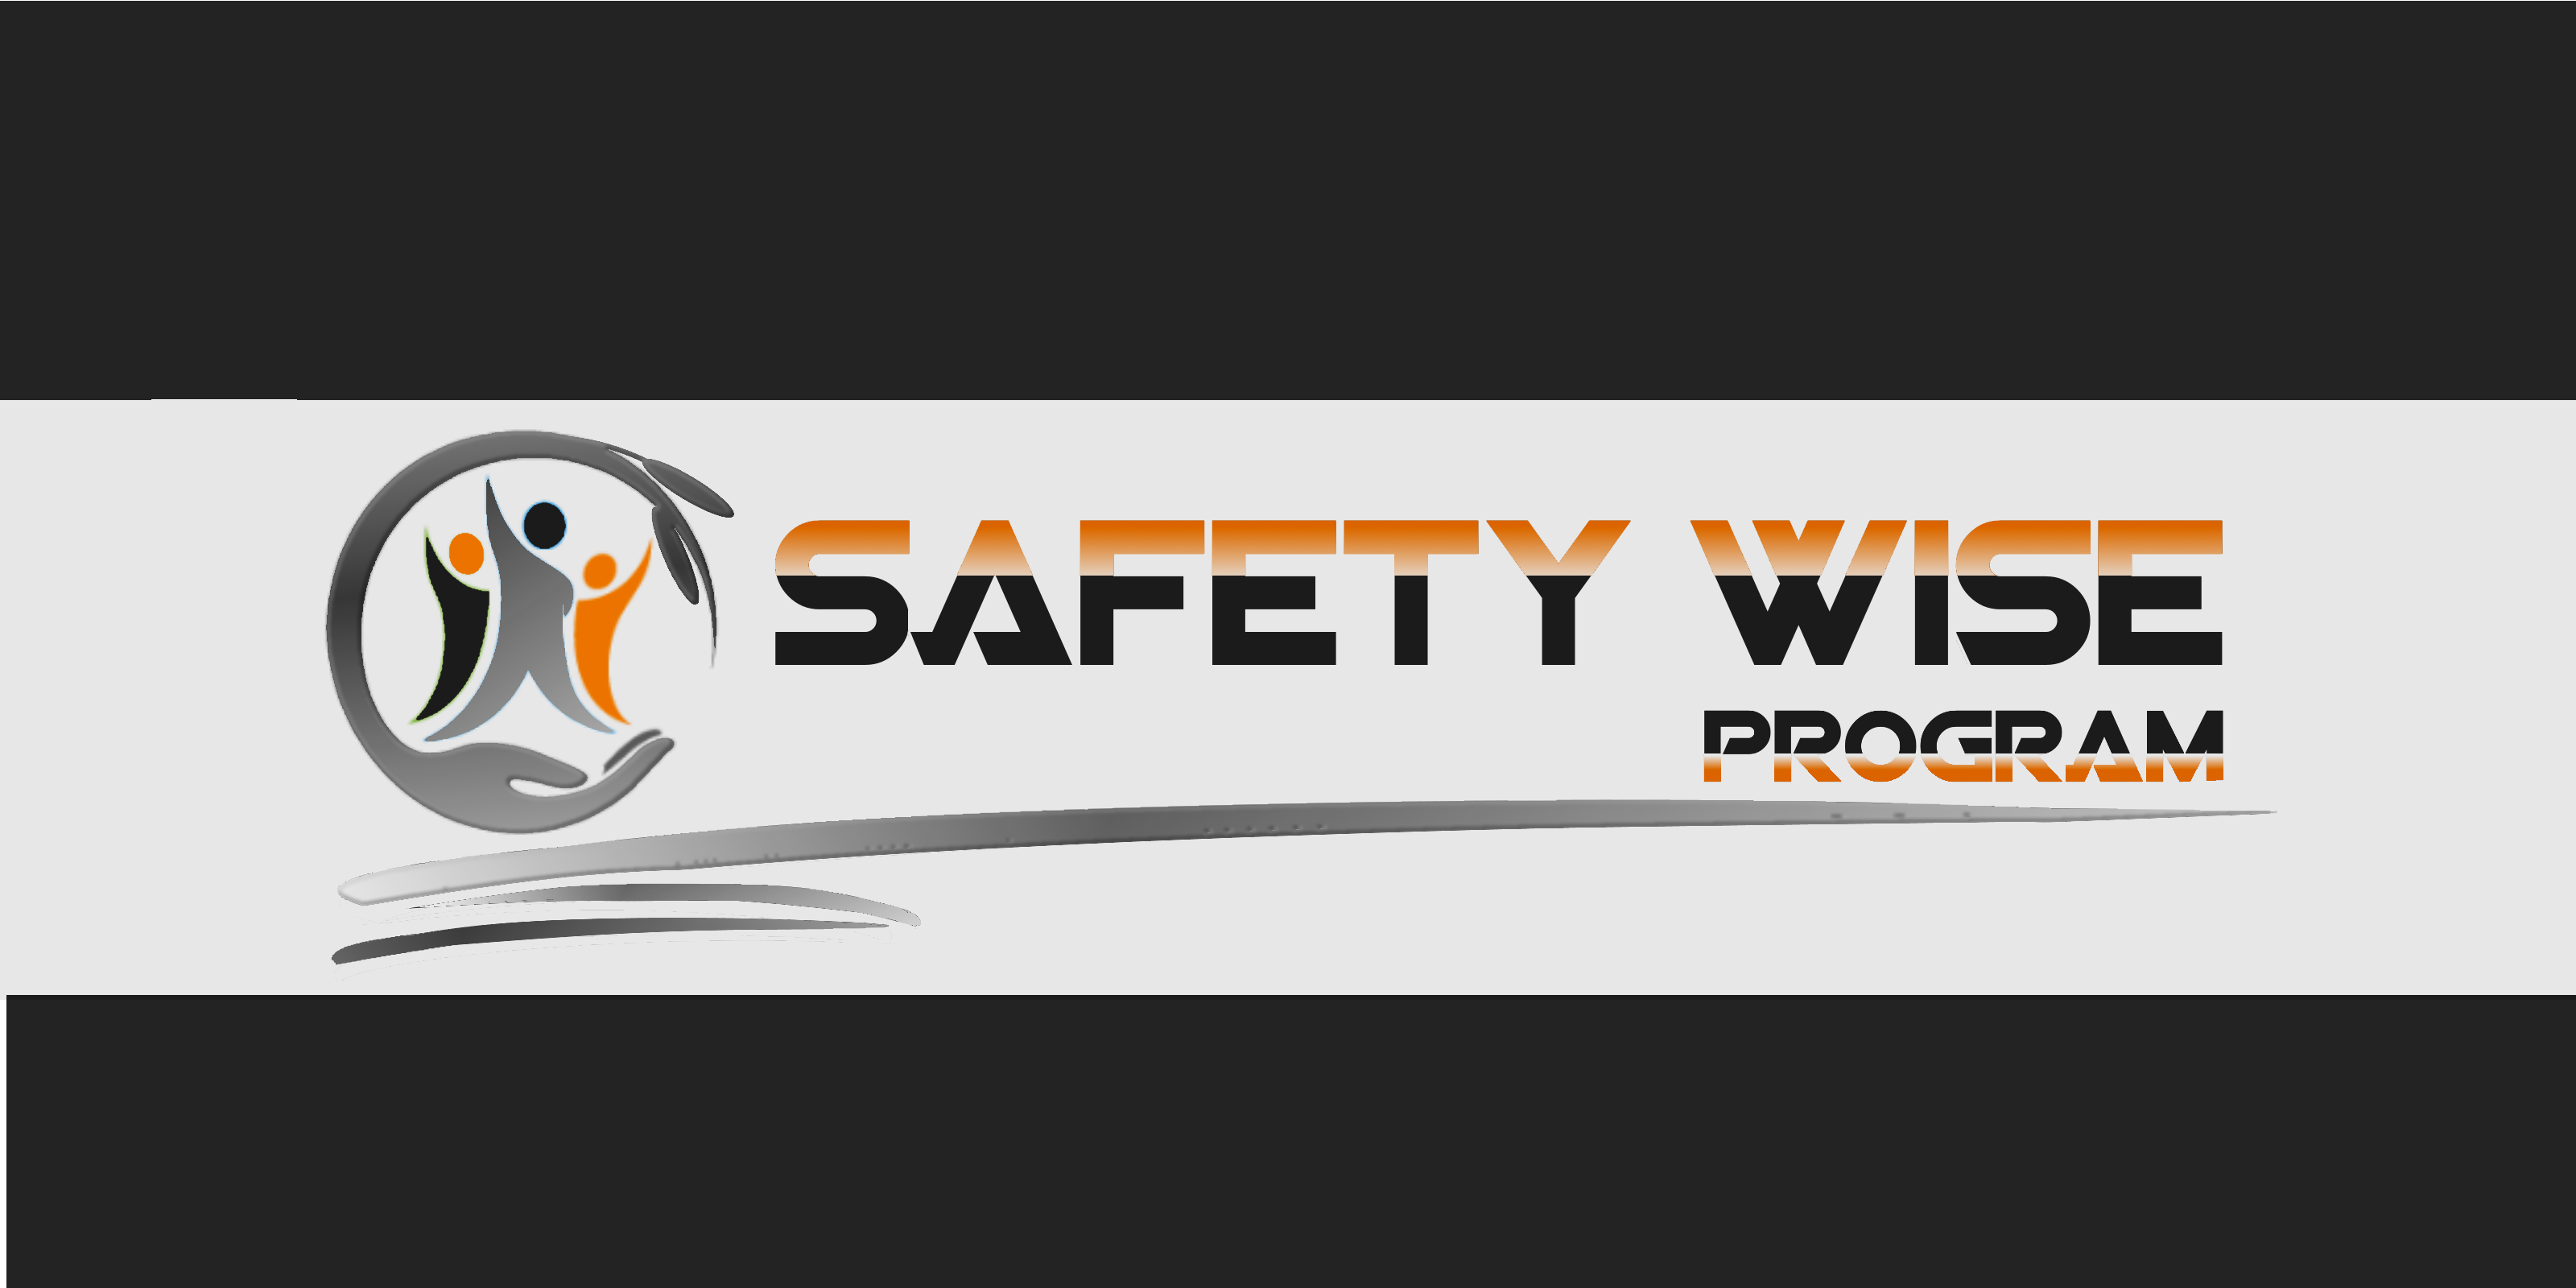 Logo Design by Roberto Bassi - Entry No. 62 in the Logo Design Contest New Logo Design for Safety Wise Program.